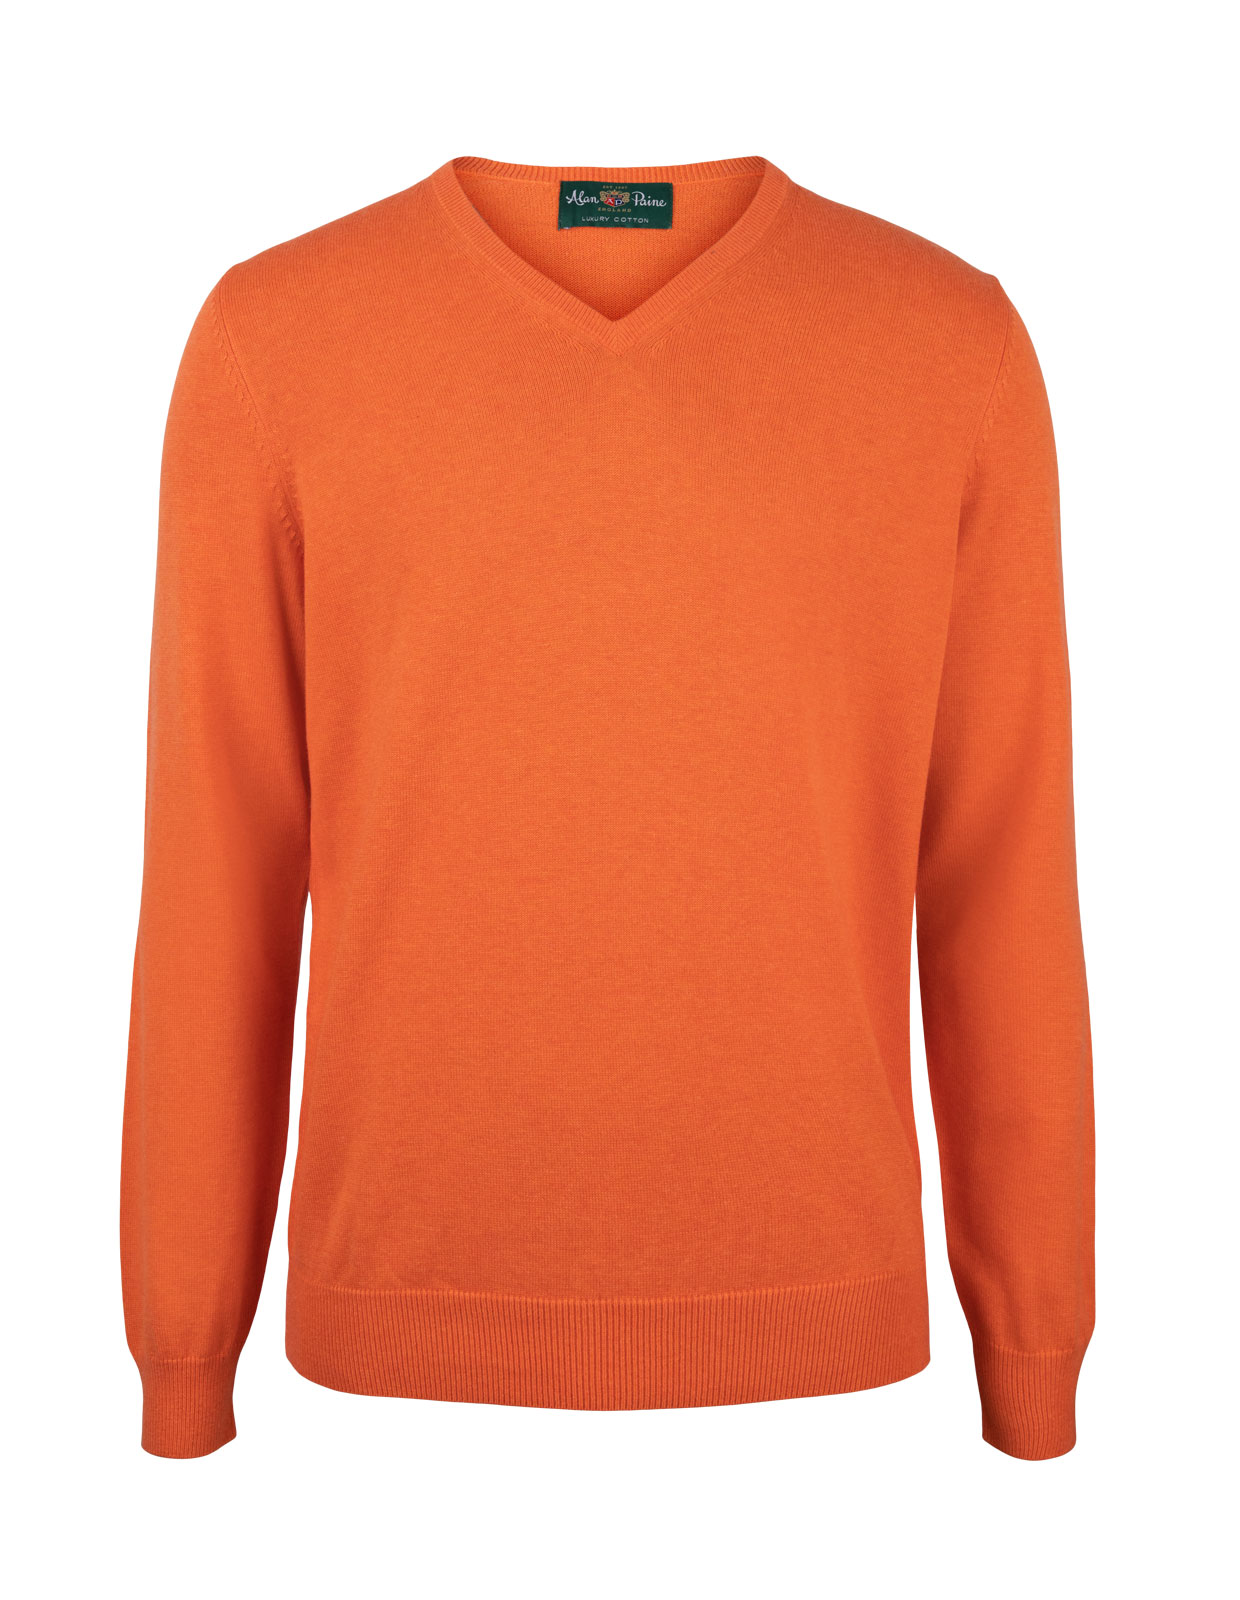 Rothwell Vee Neck Cotton Cashmere Blazing Orange